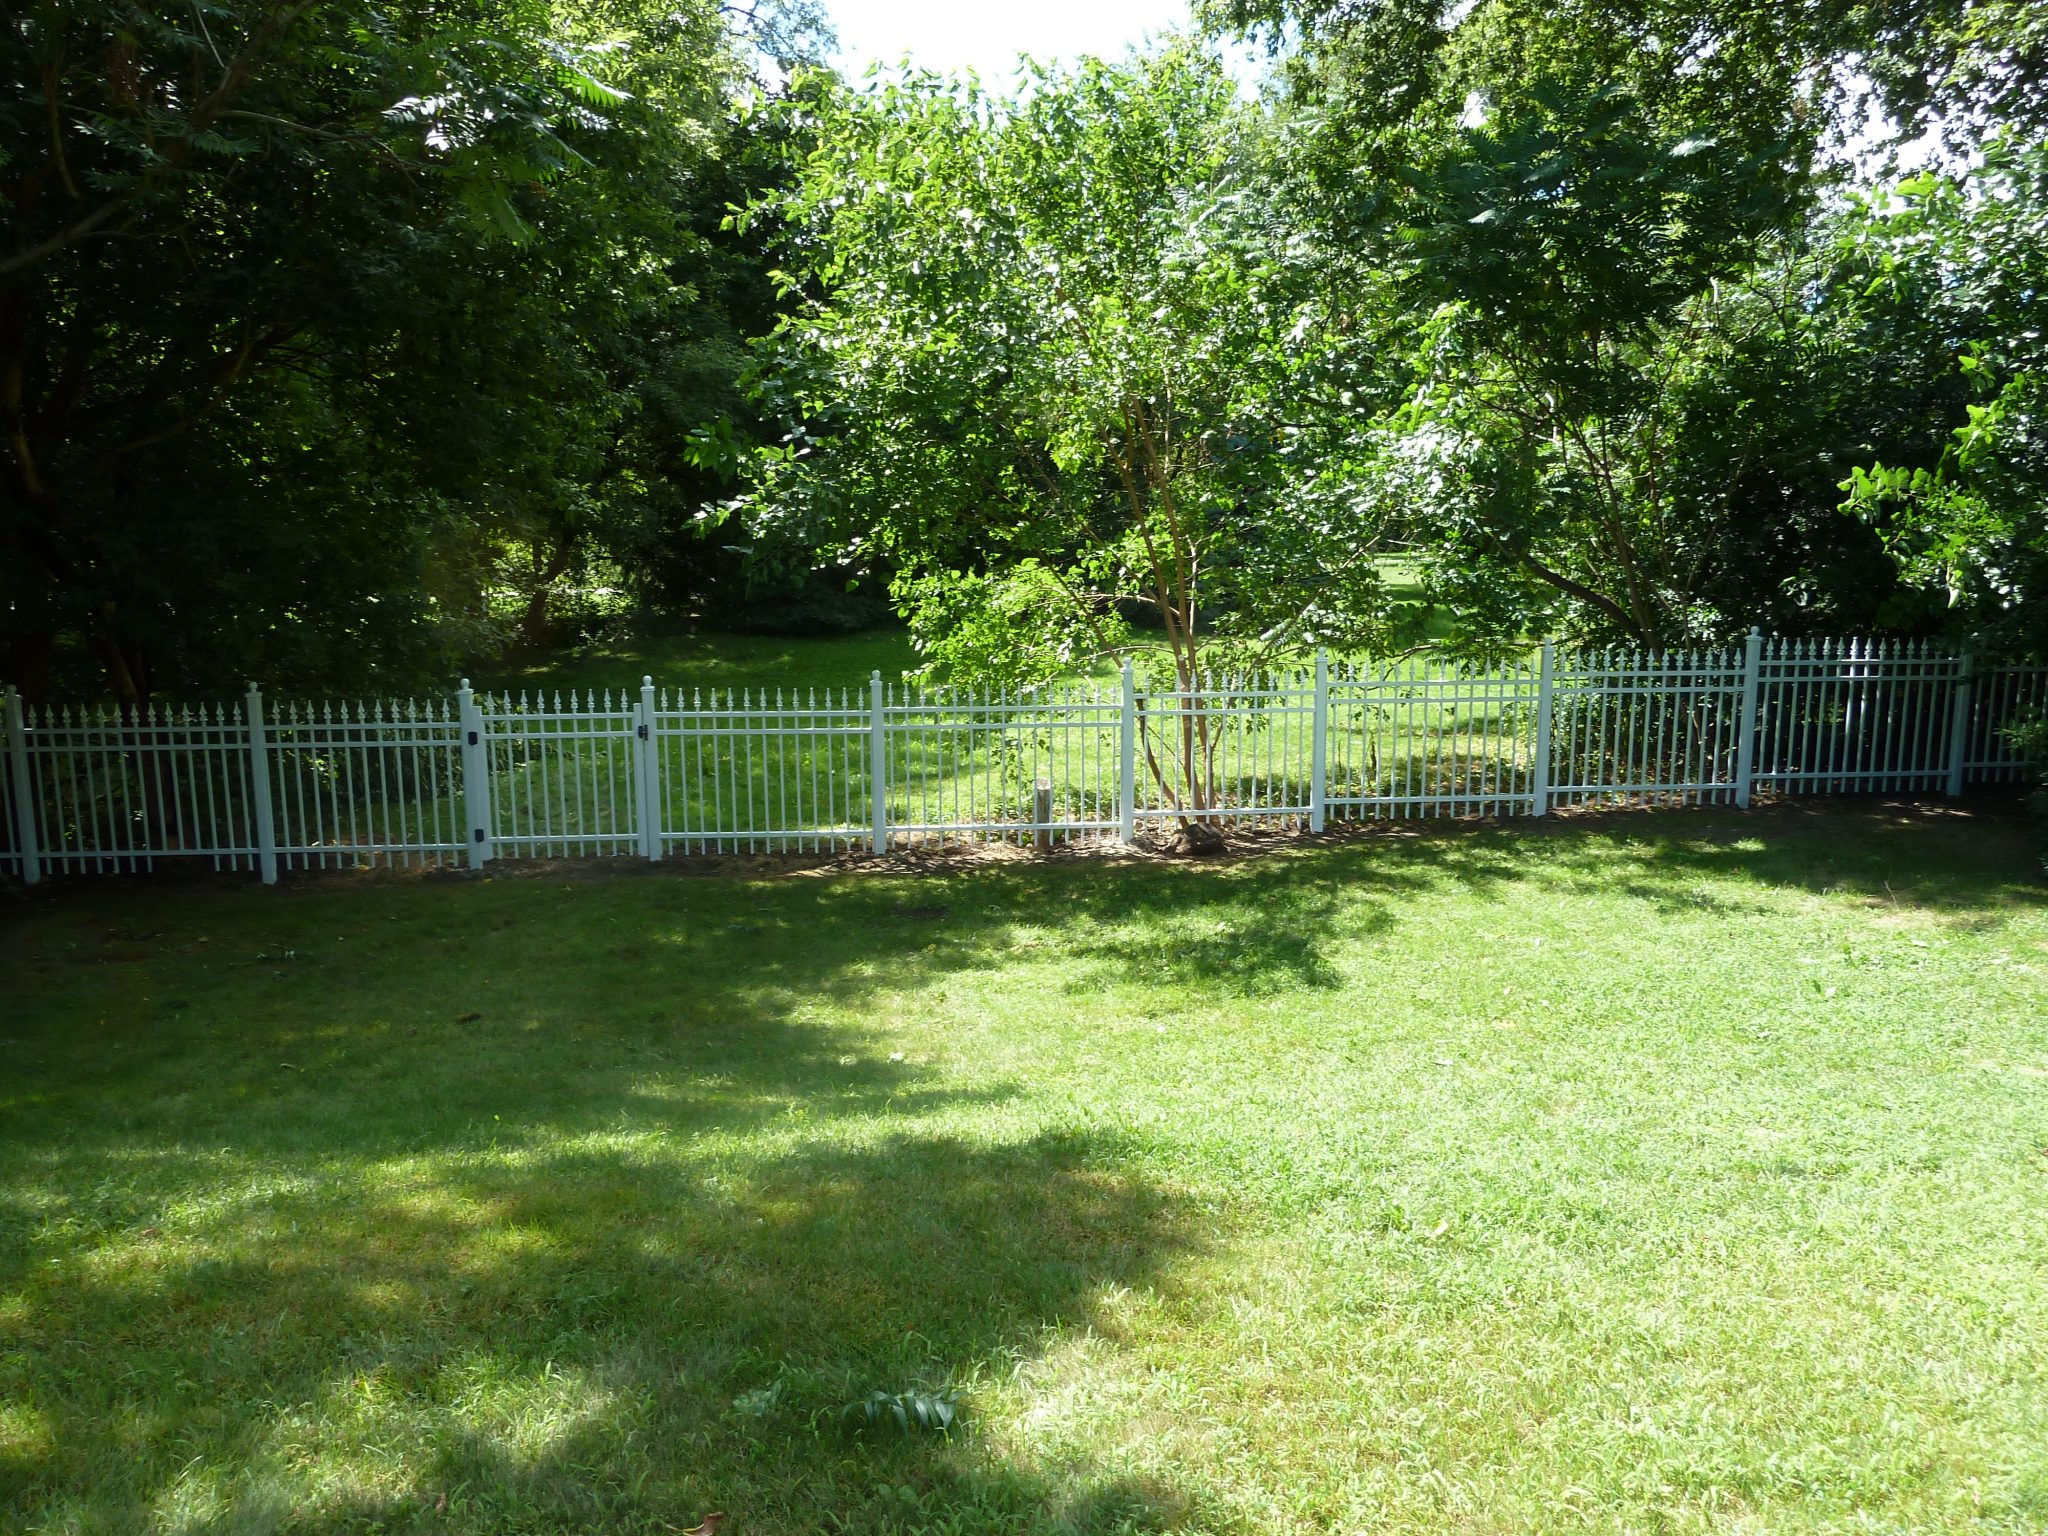 Yard with picket fence